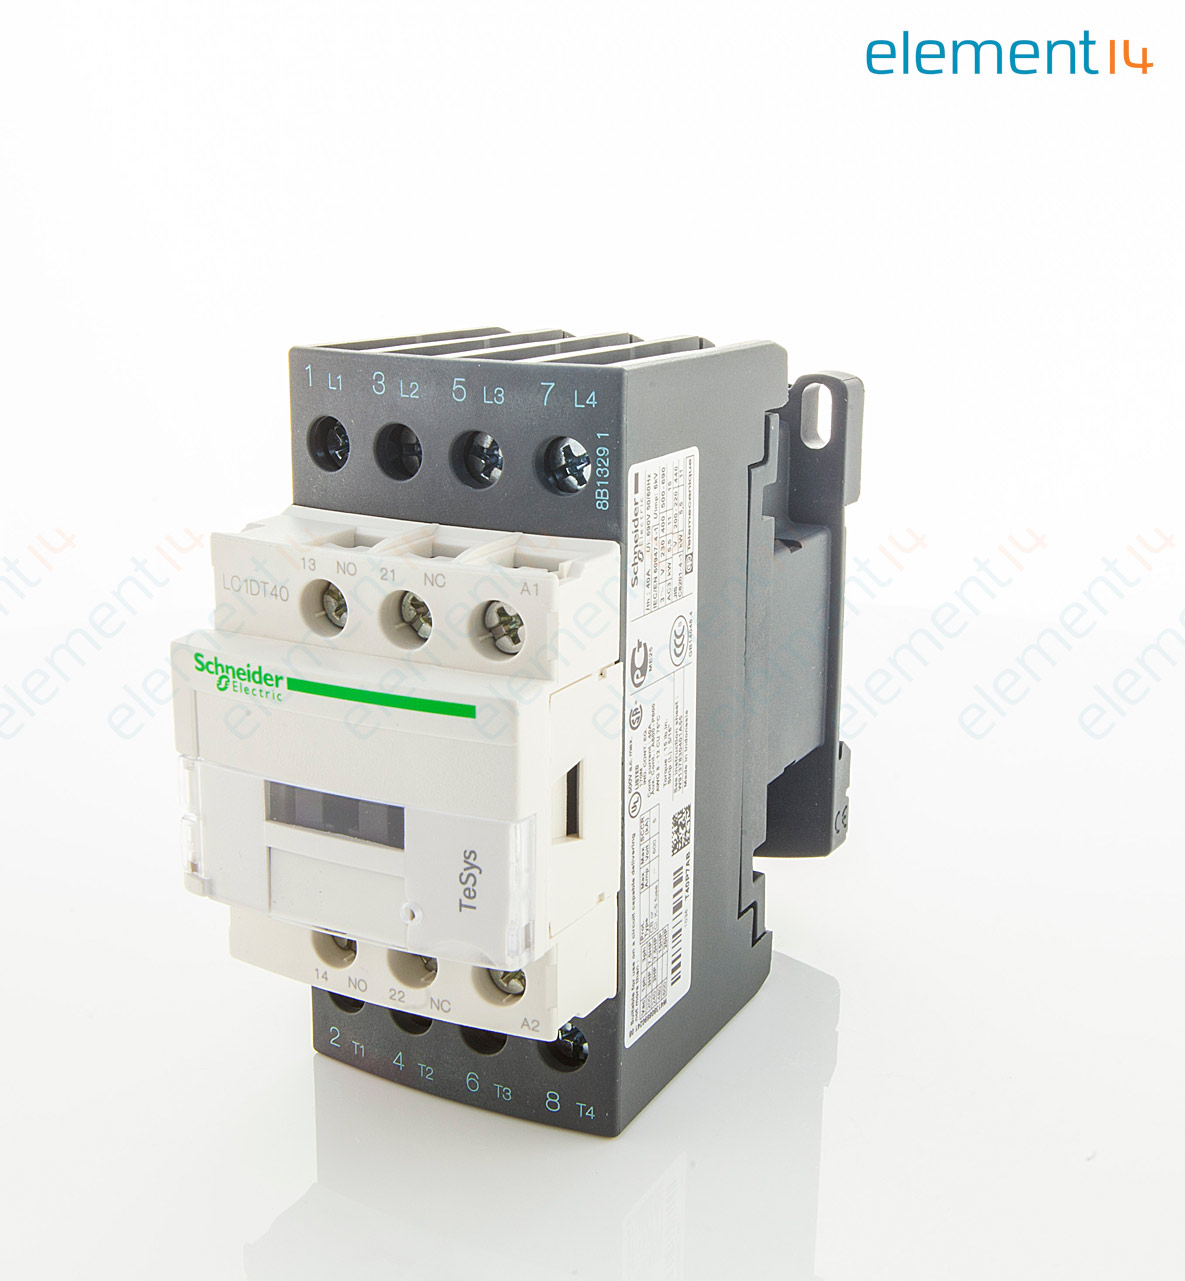 lc1dt40p7 schneider electric contactor tesys d din rail contactor tesys d din rail 230 vac 4pno 4 pole